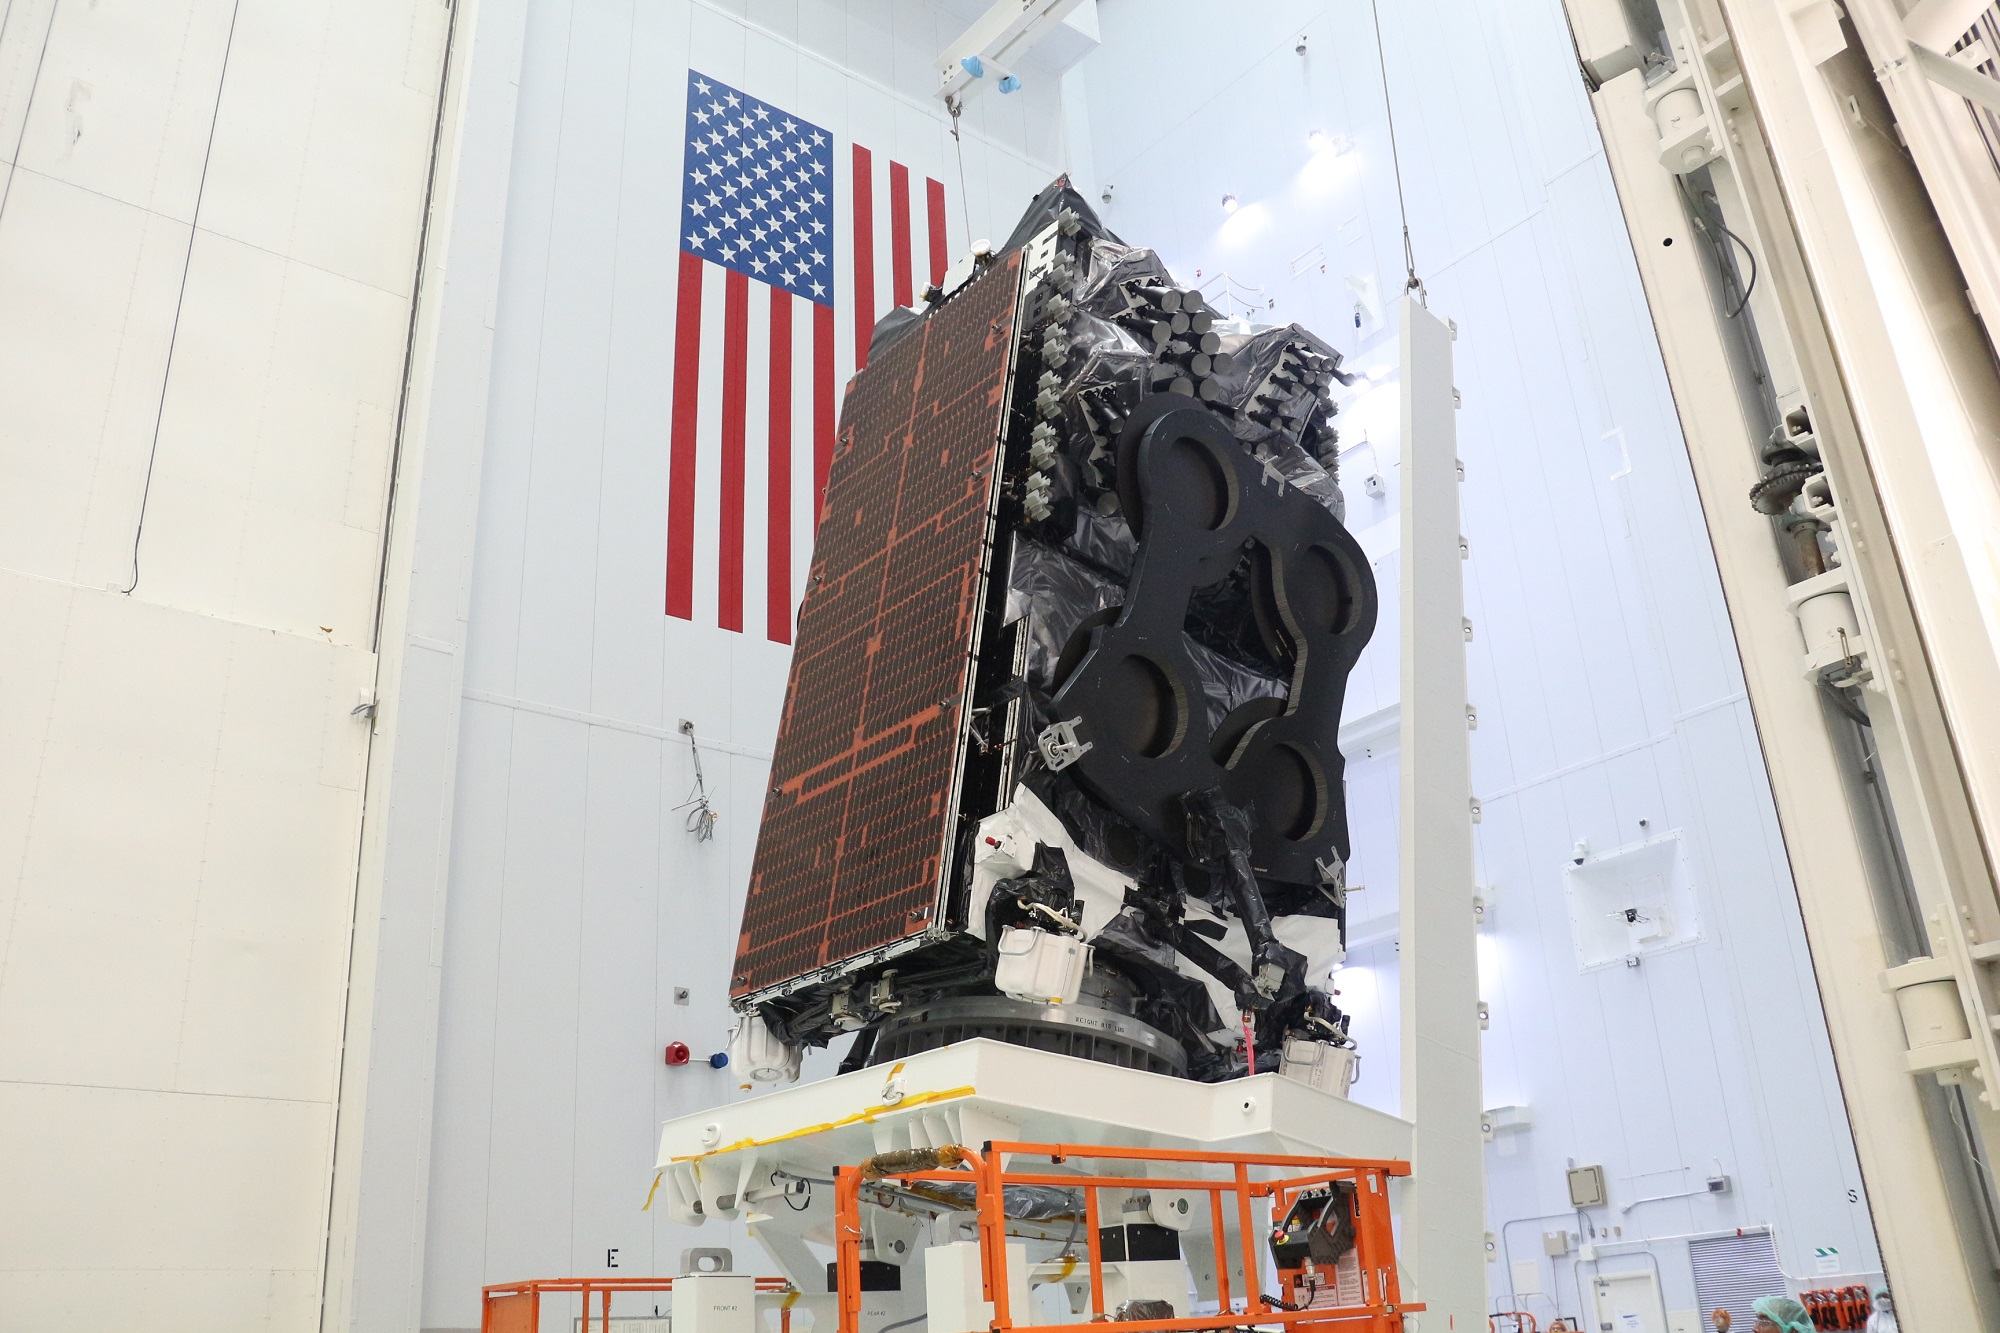 Kacific1 satellite (JCSAT-18/Kacific1) at SpaceX launch facilities, preparing for launch